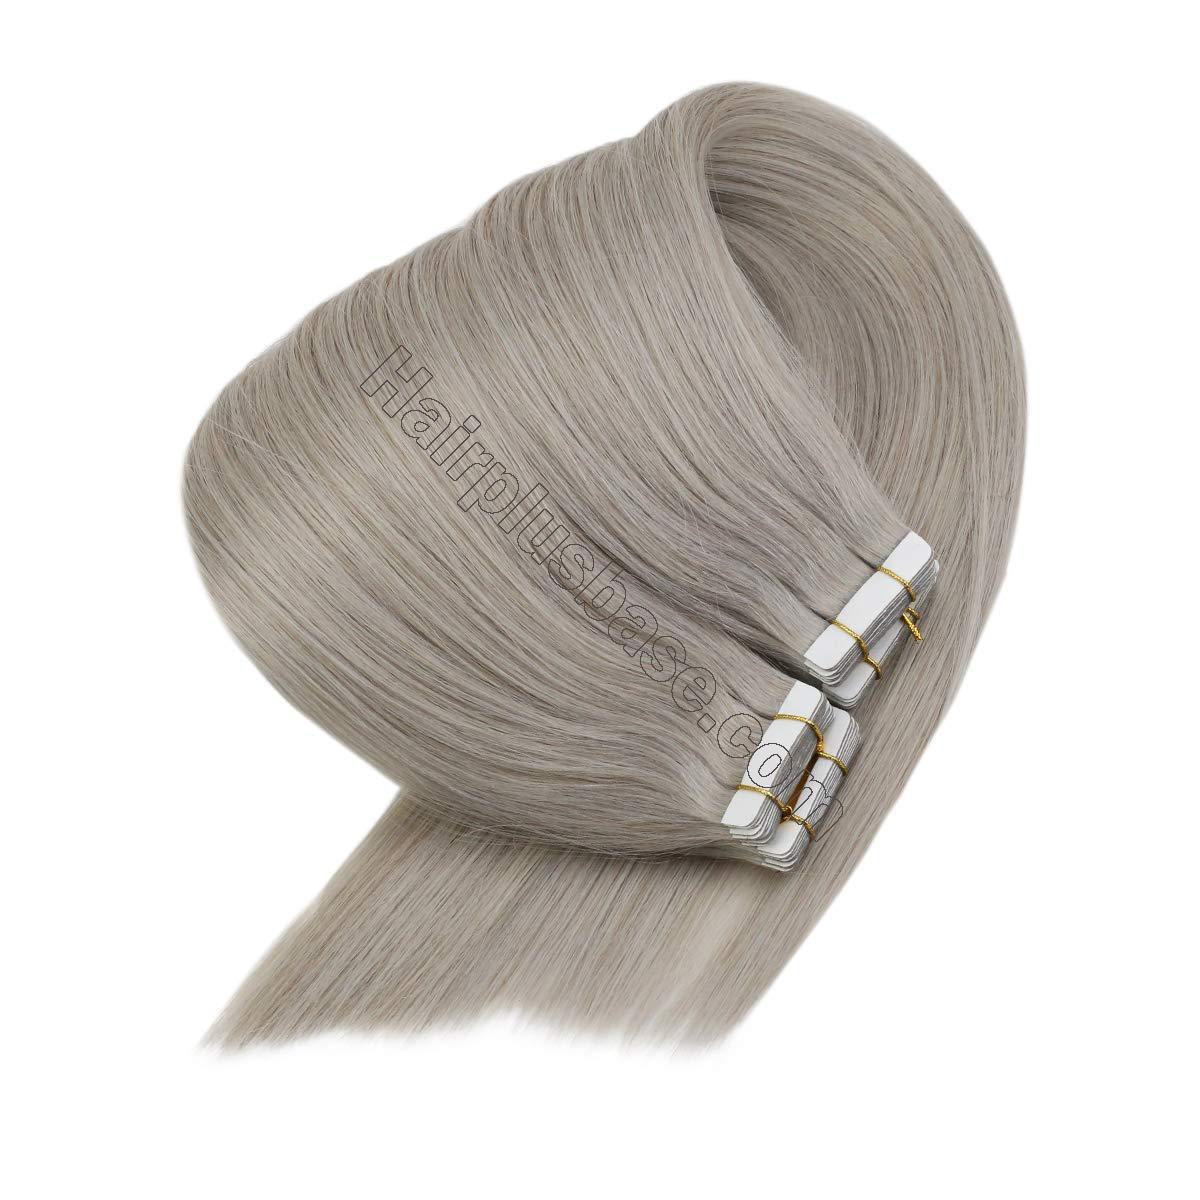 10 - 30 Inch Tape In Remy Human Hair Extensions Grey 20 Pcs 2